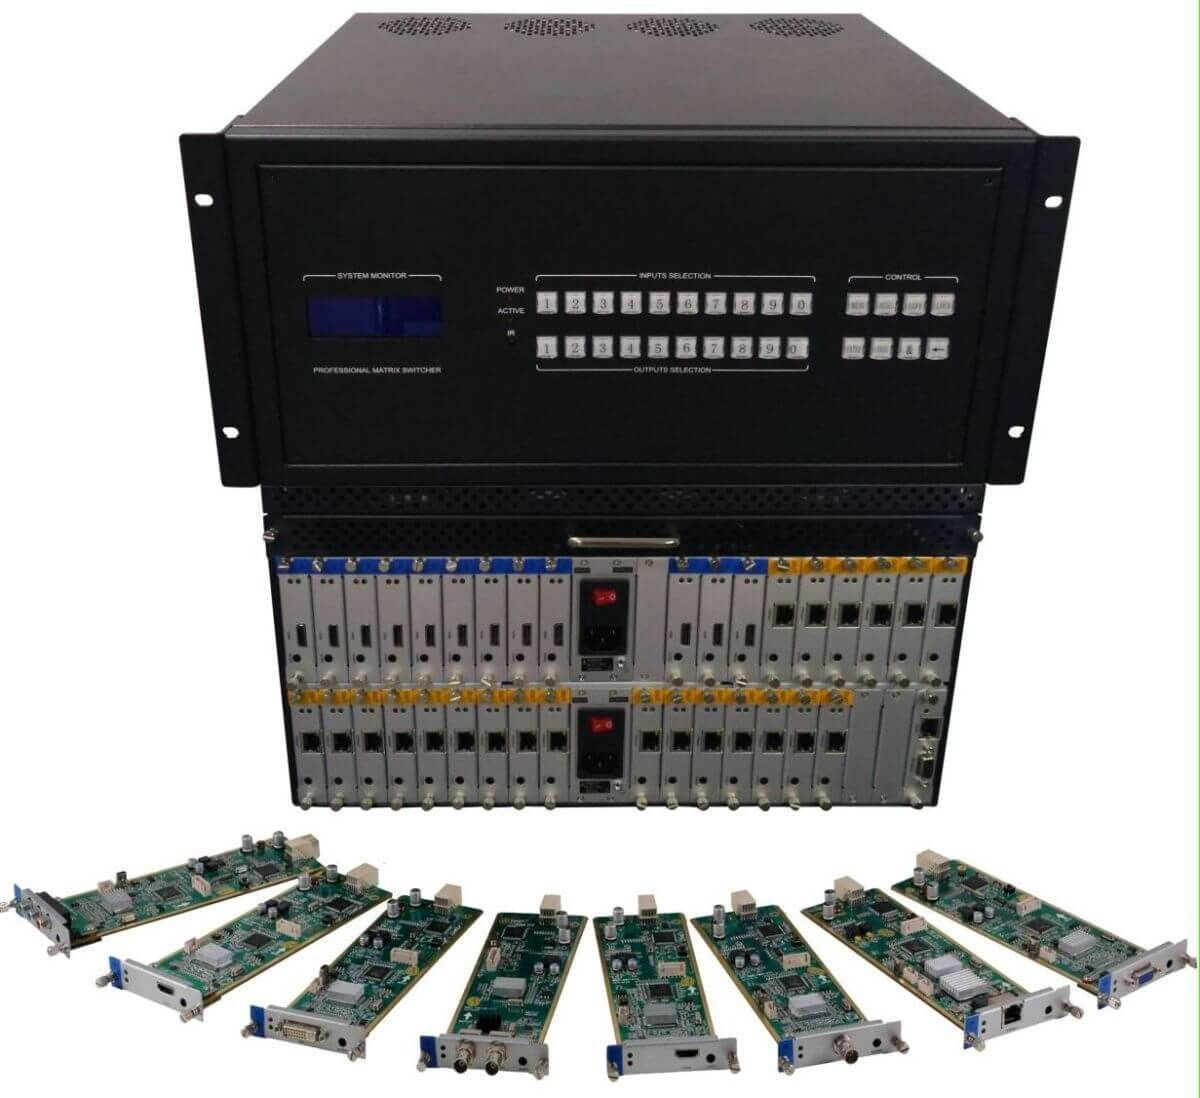 24x36 HDMI Matrix Switcher with Video Wall Processor